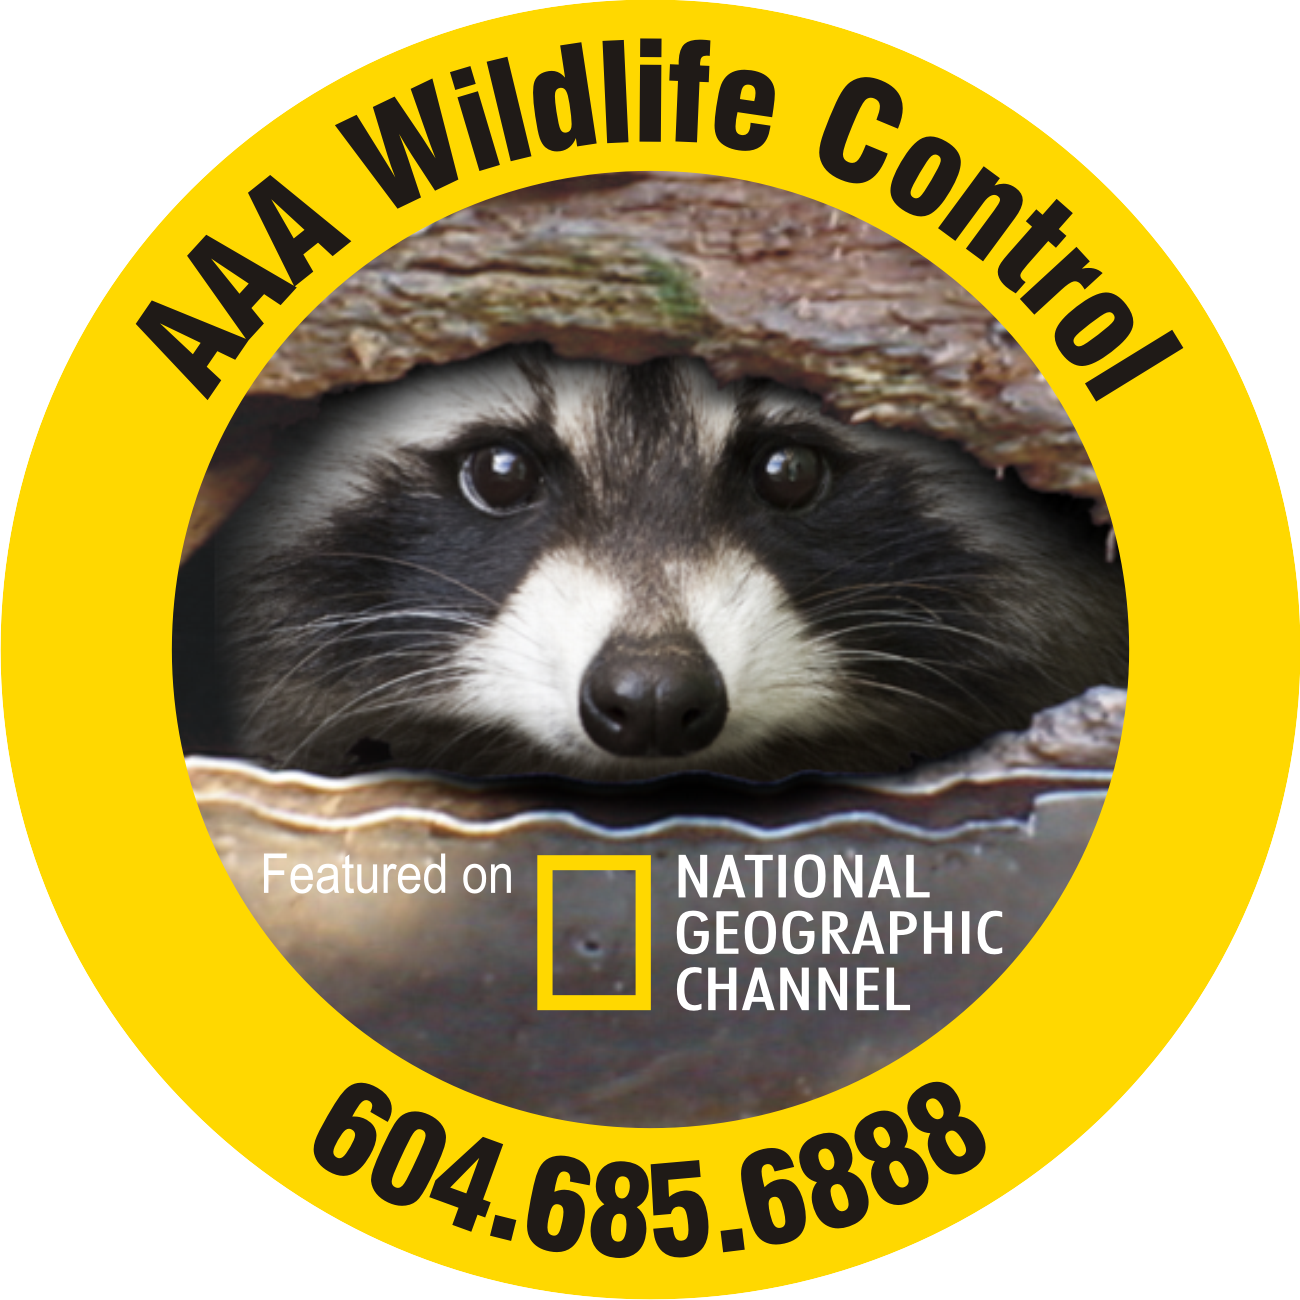 Racoon clipart badger. Aaa wildlife control pest